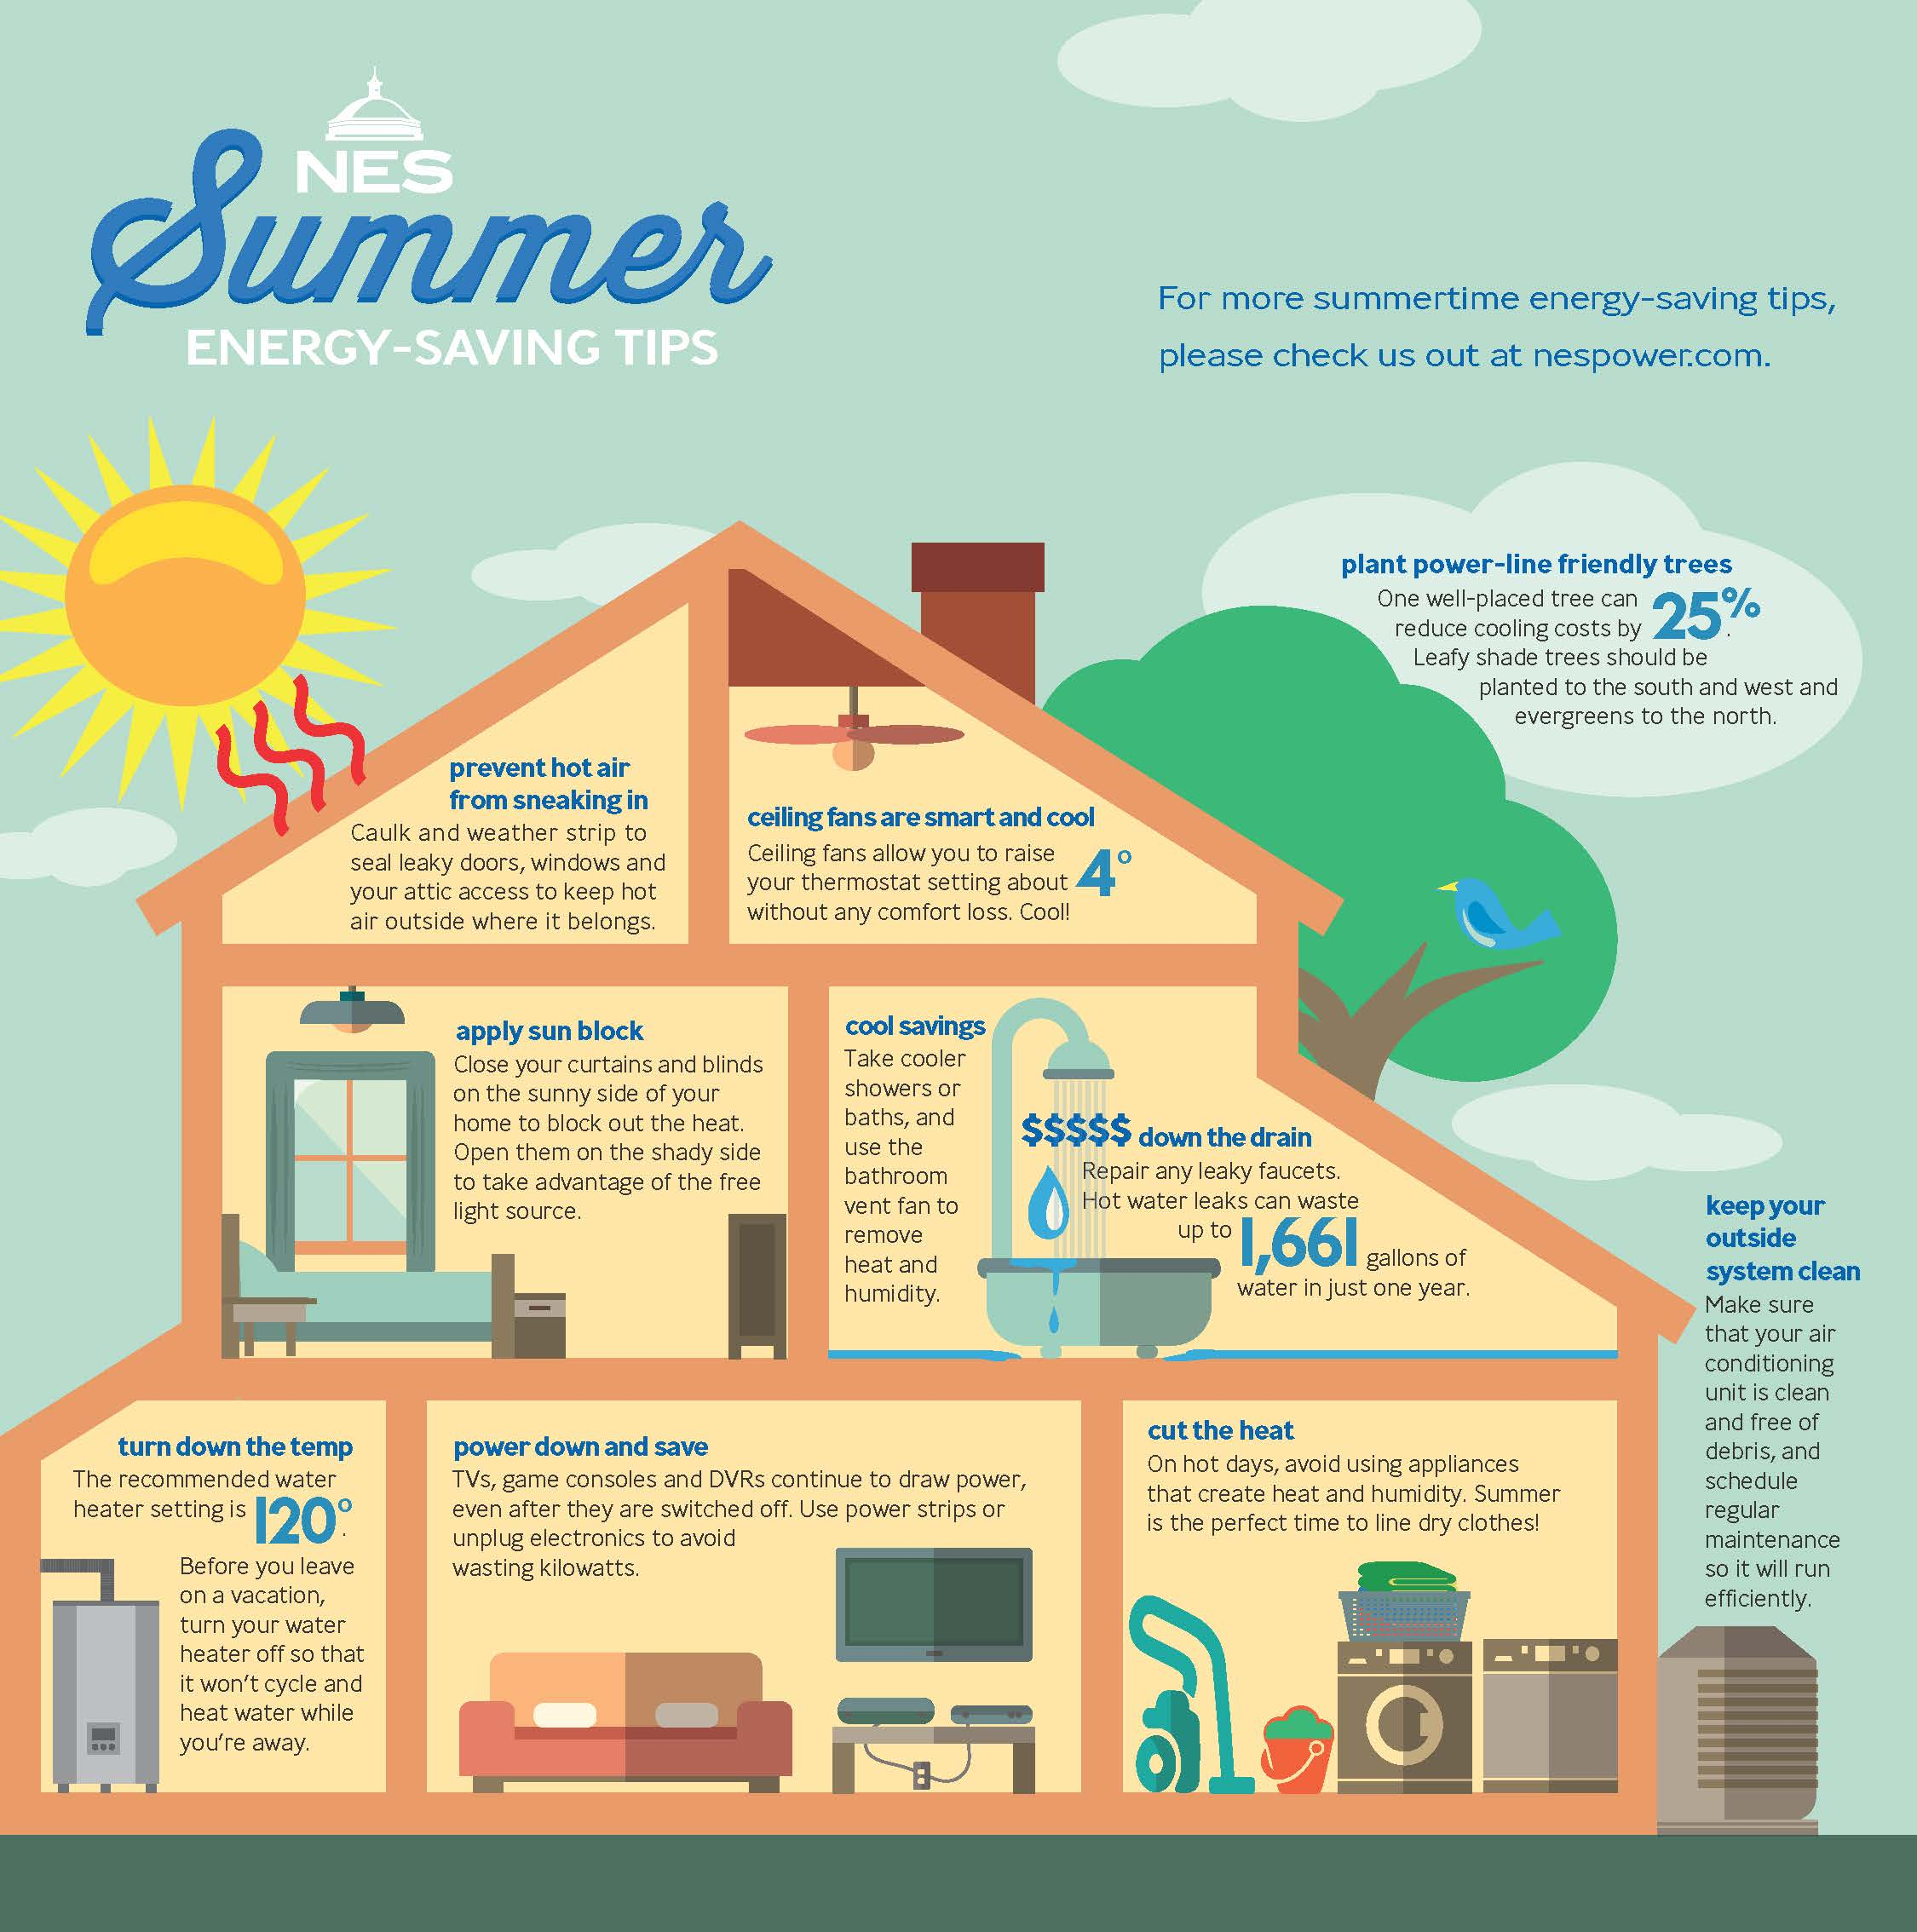 Energy Saving Tips For Summer nes shows cool ways to get summertime savings